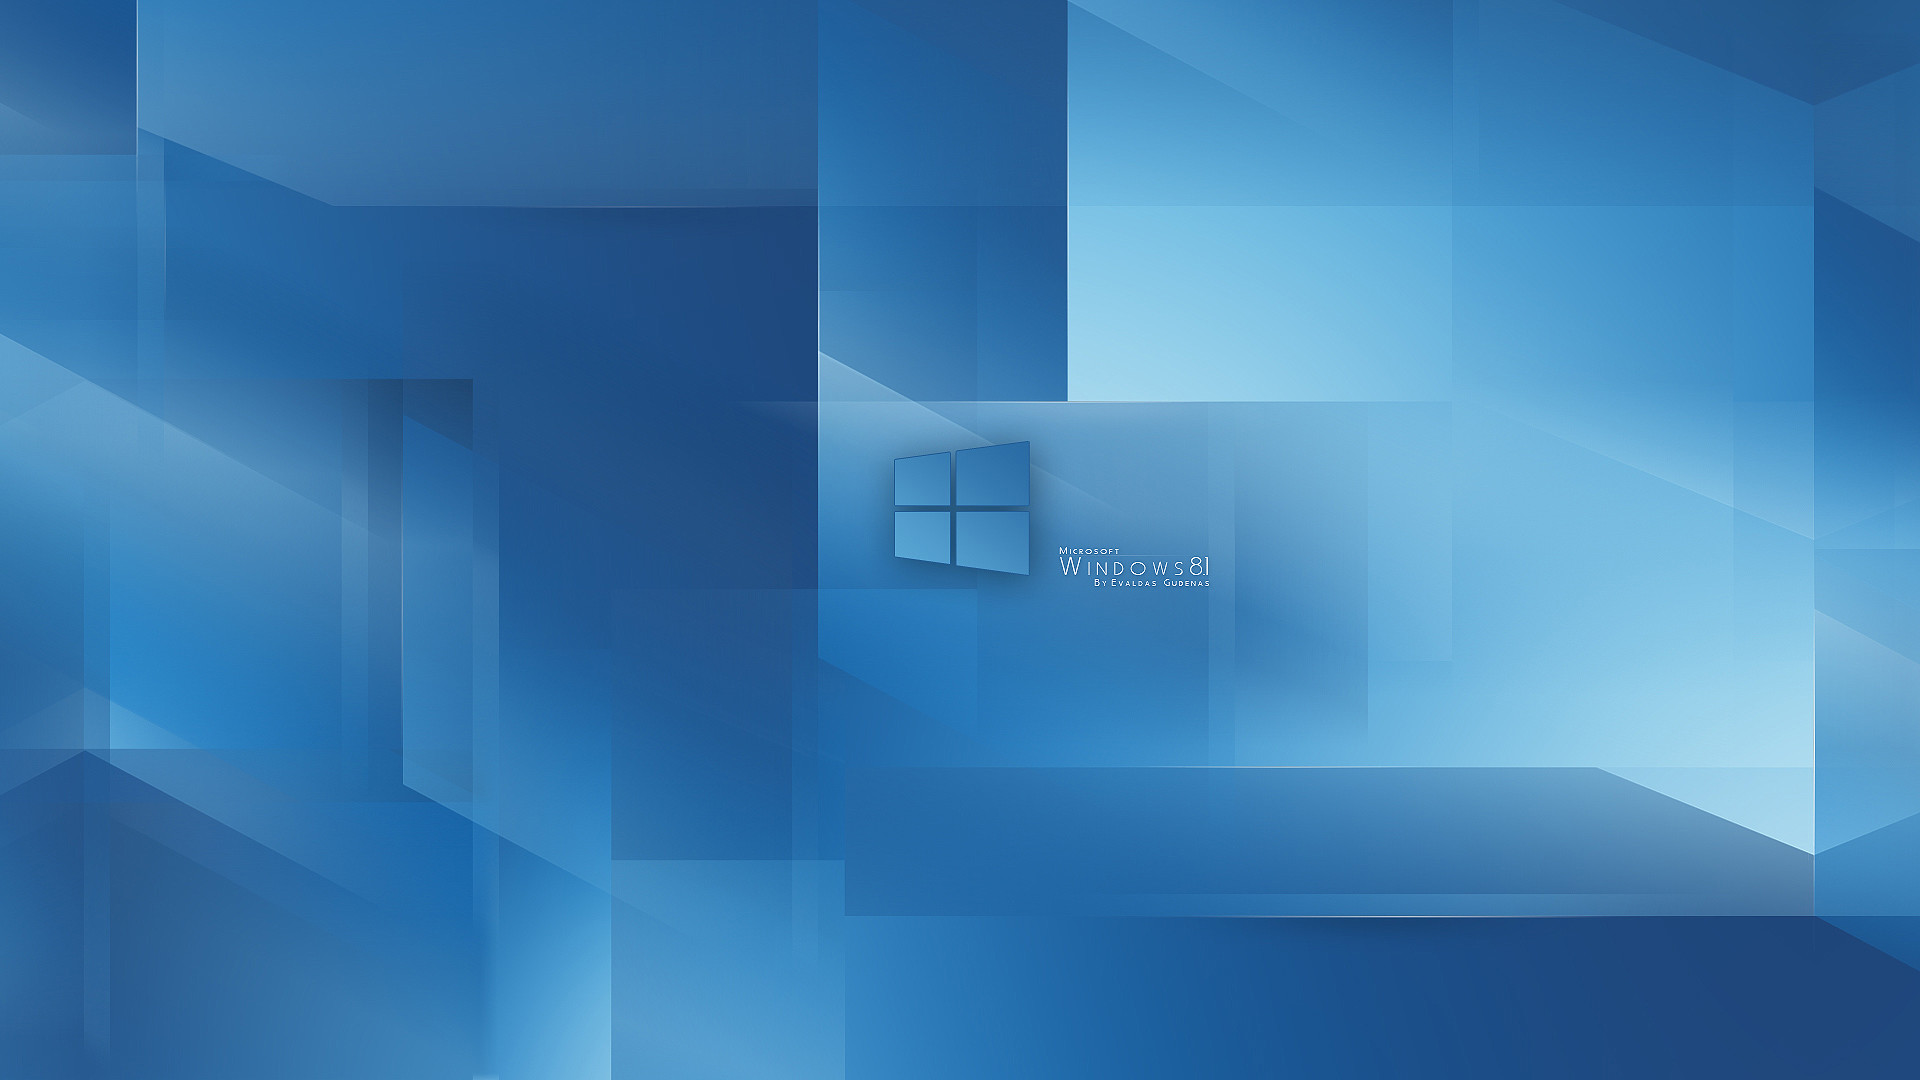 1920x1080 More Windows 81 Wallpapers